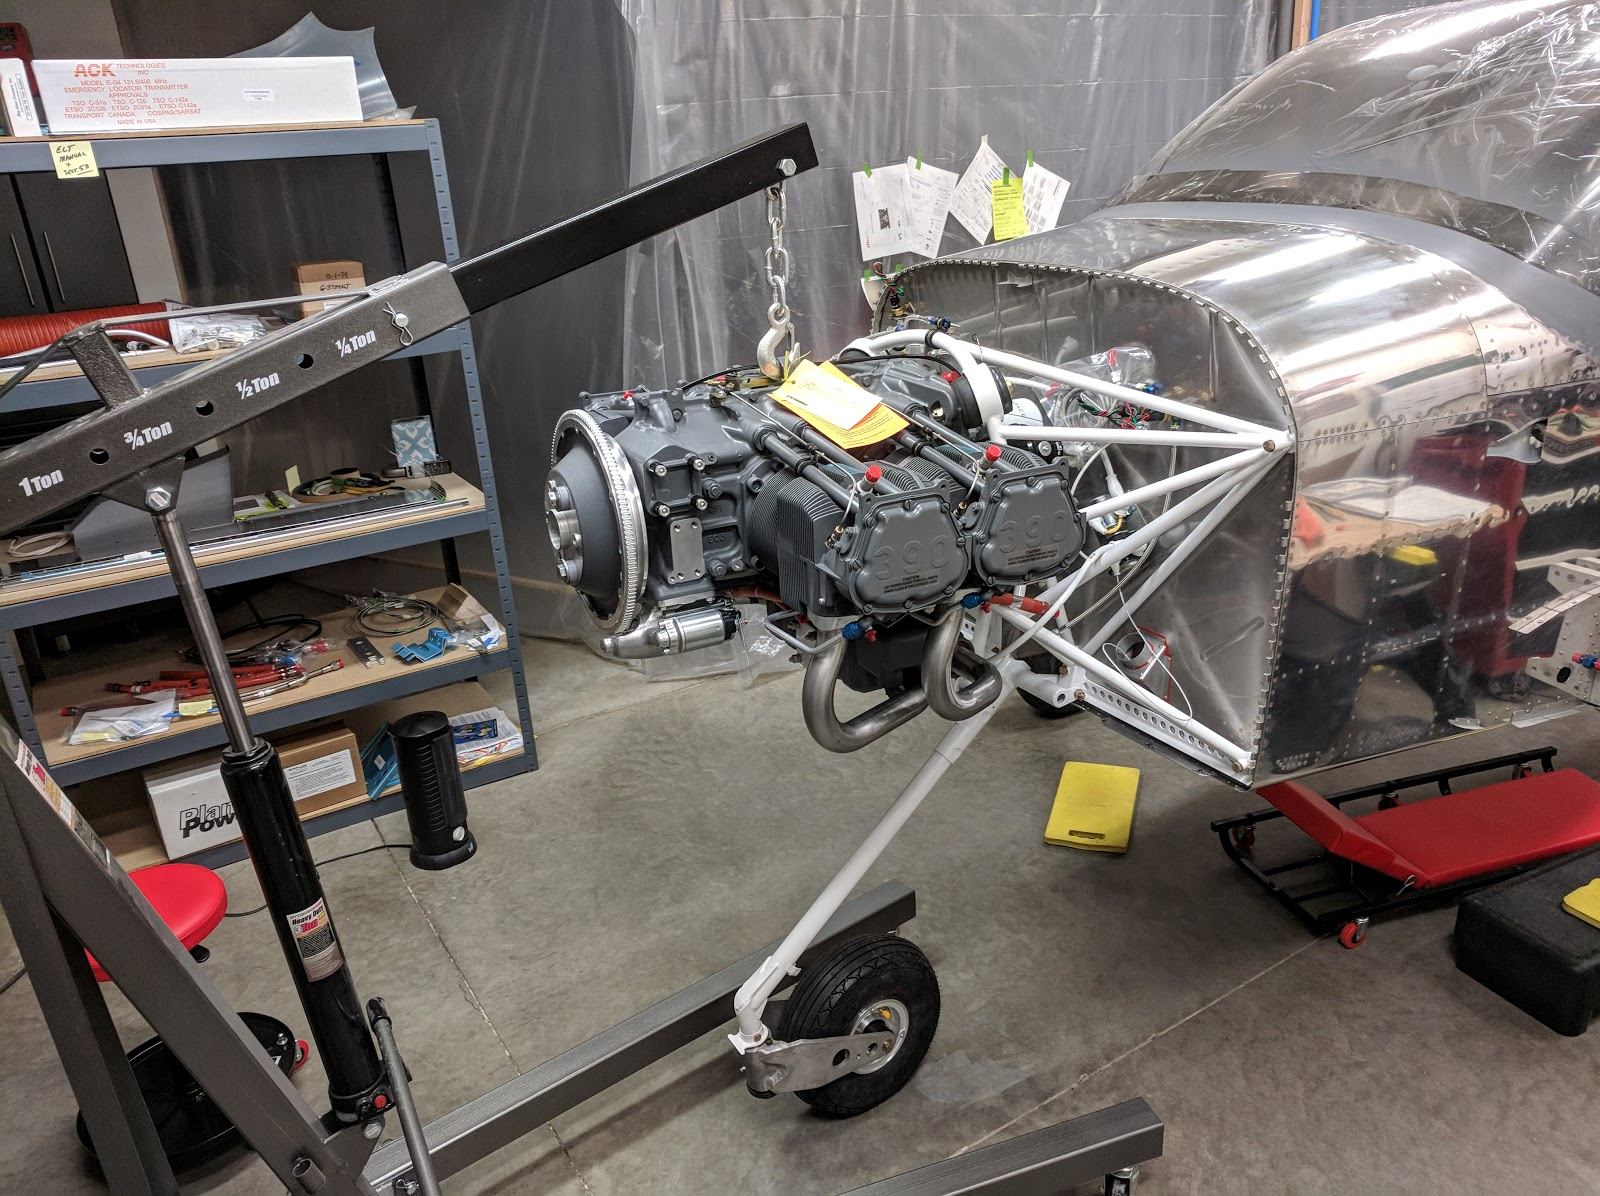 Steevo's RV14a Build Log: January 2018